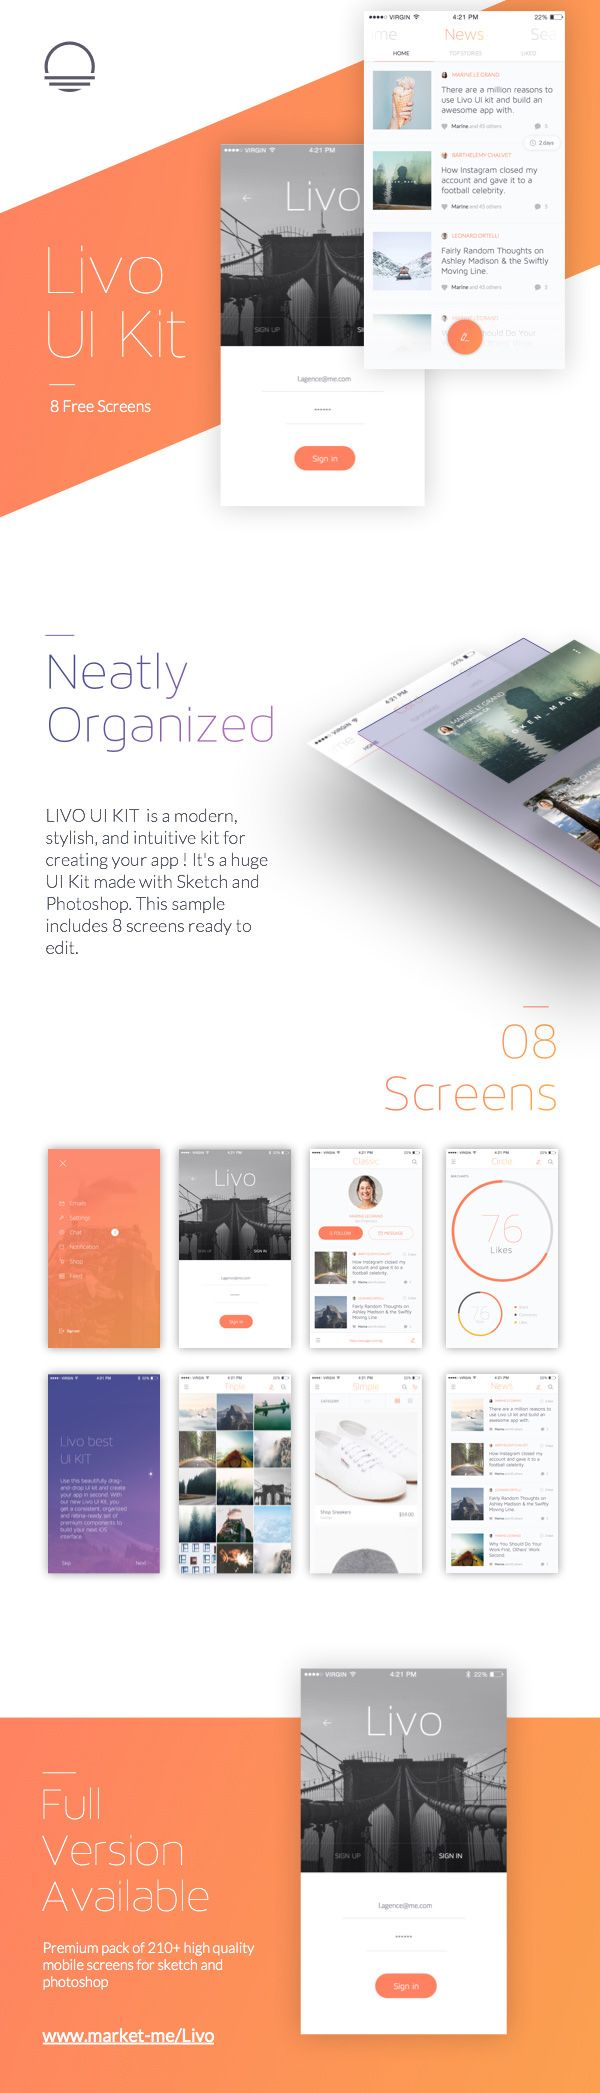 Have a nice week with a neatly organized FREE UI Kit – Livo. The Kit contains 8 screens from across different categories and is compatible with both Photoshop and Sketch. With polished design, It will help you to build your next mobile app successfully.